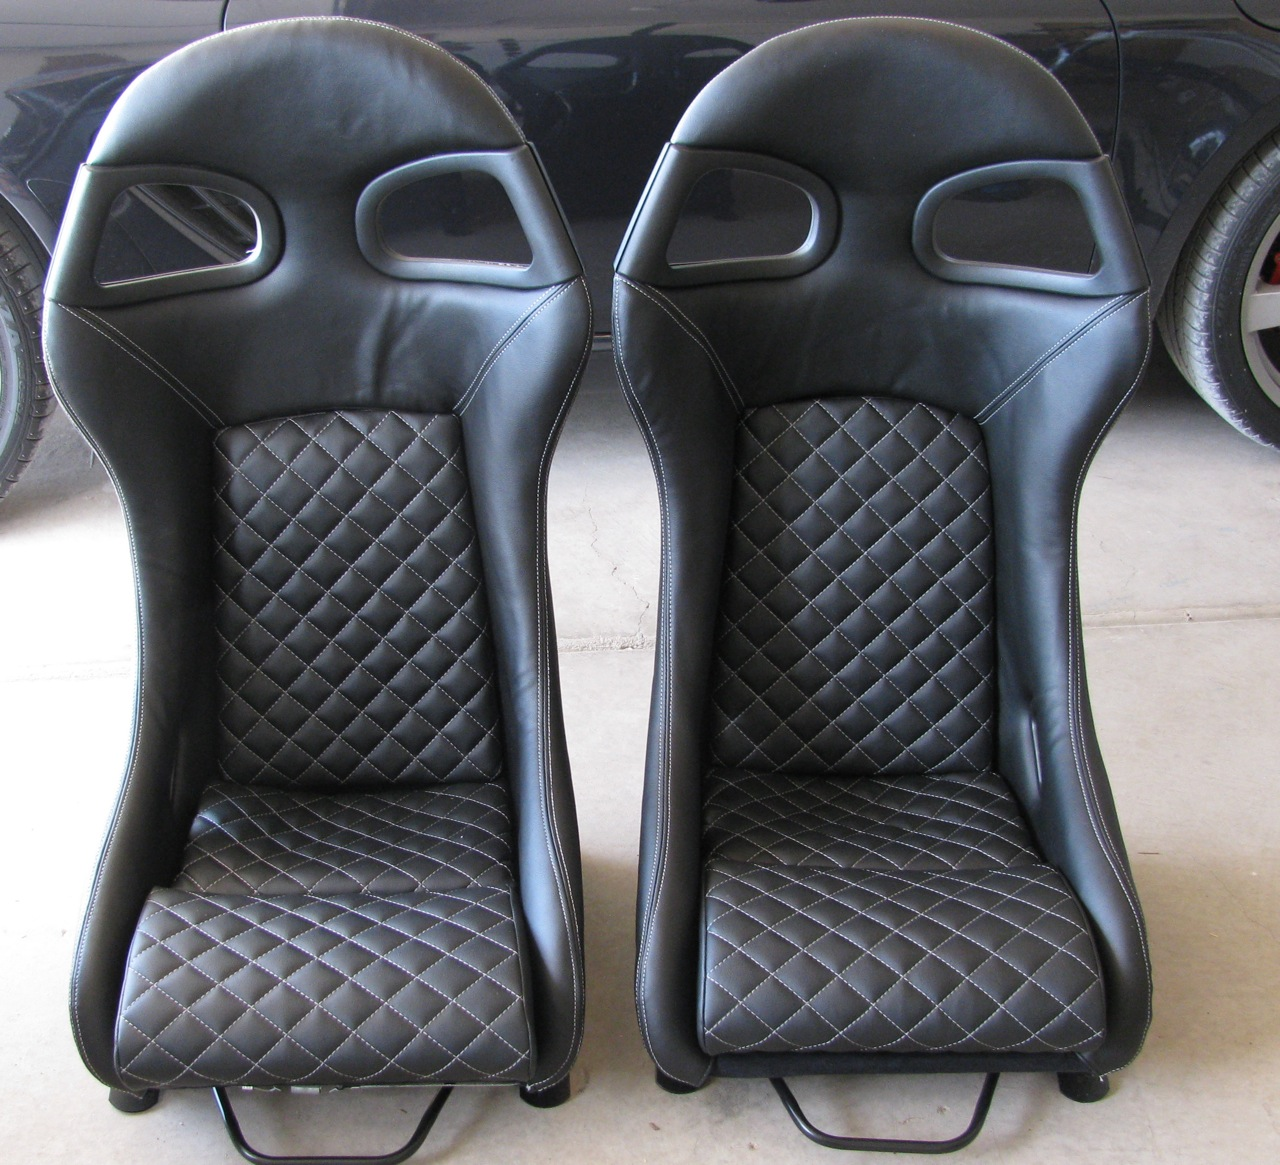 Fs Gt3 Replica Seats From Rottec New 986 Forum For